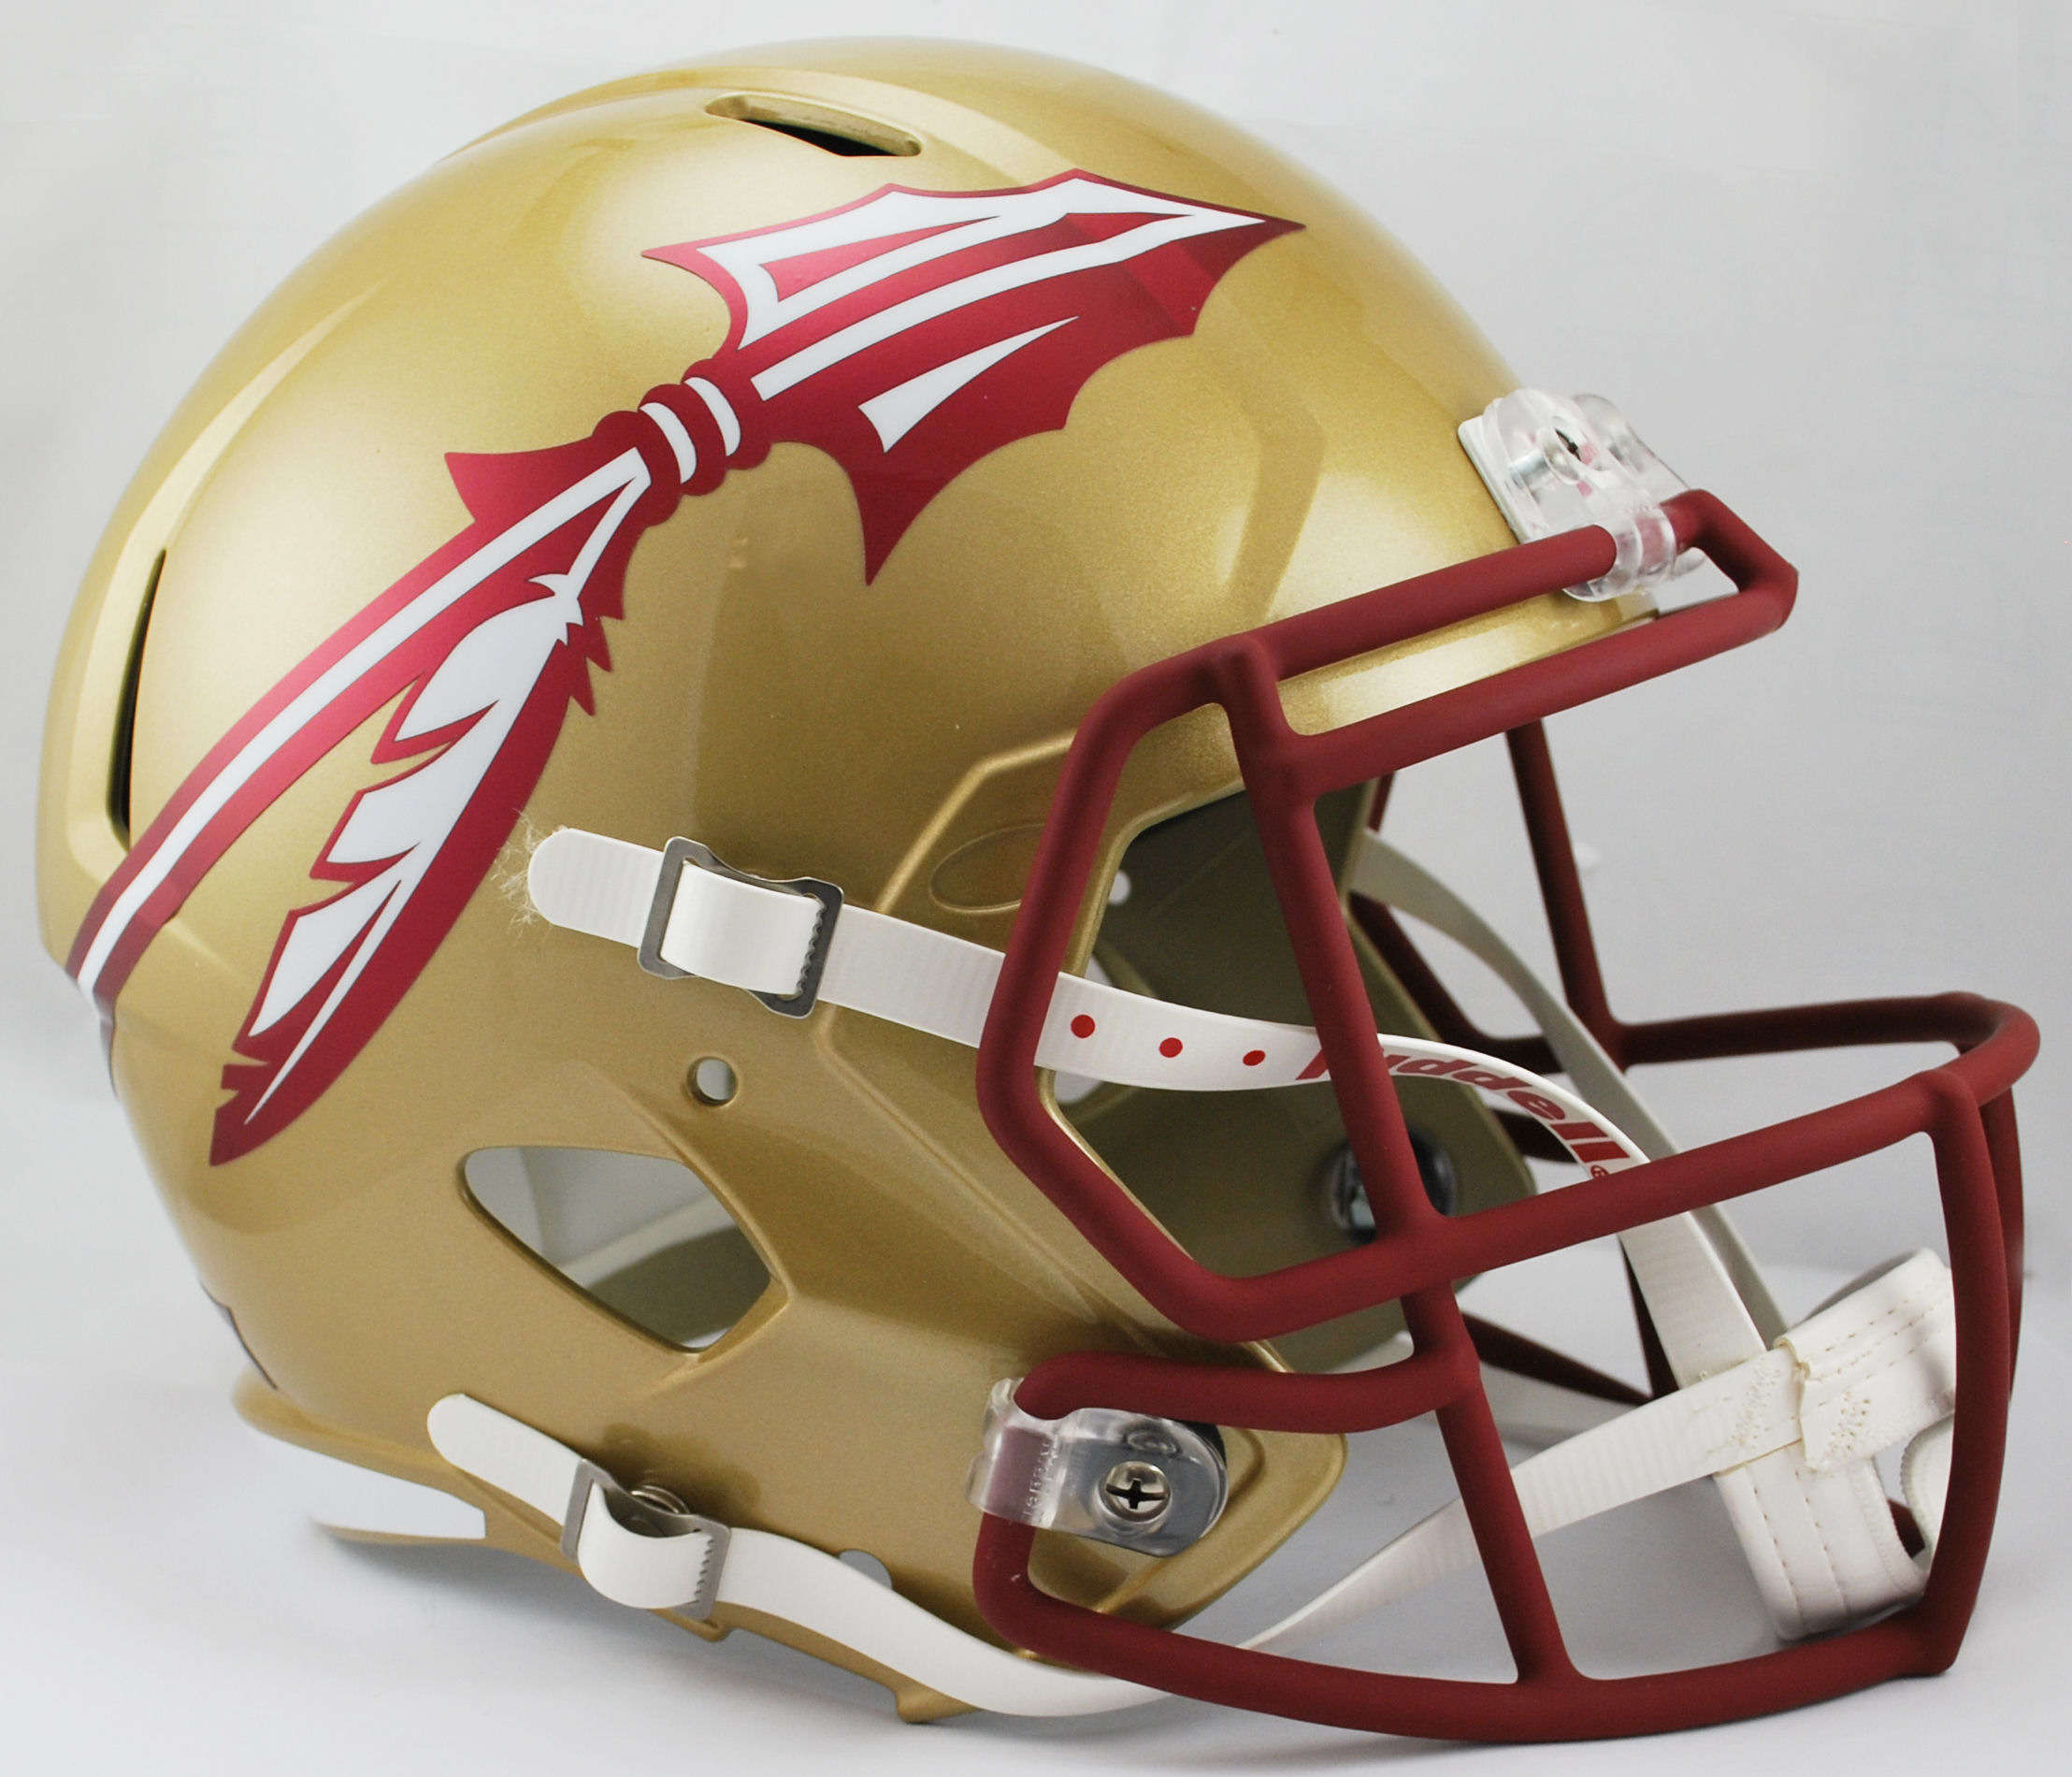 Florida State Seminoles Speed Replica Football Helmet